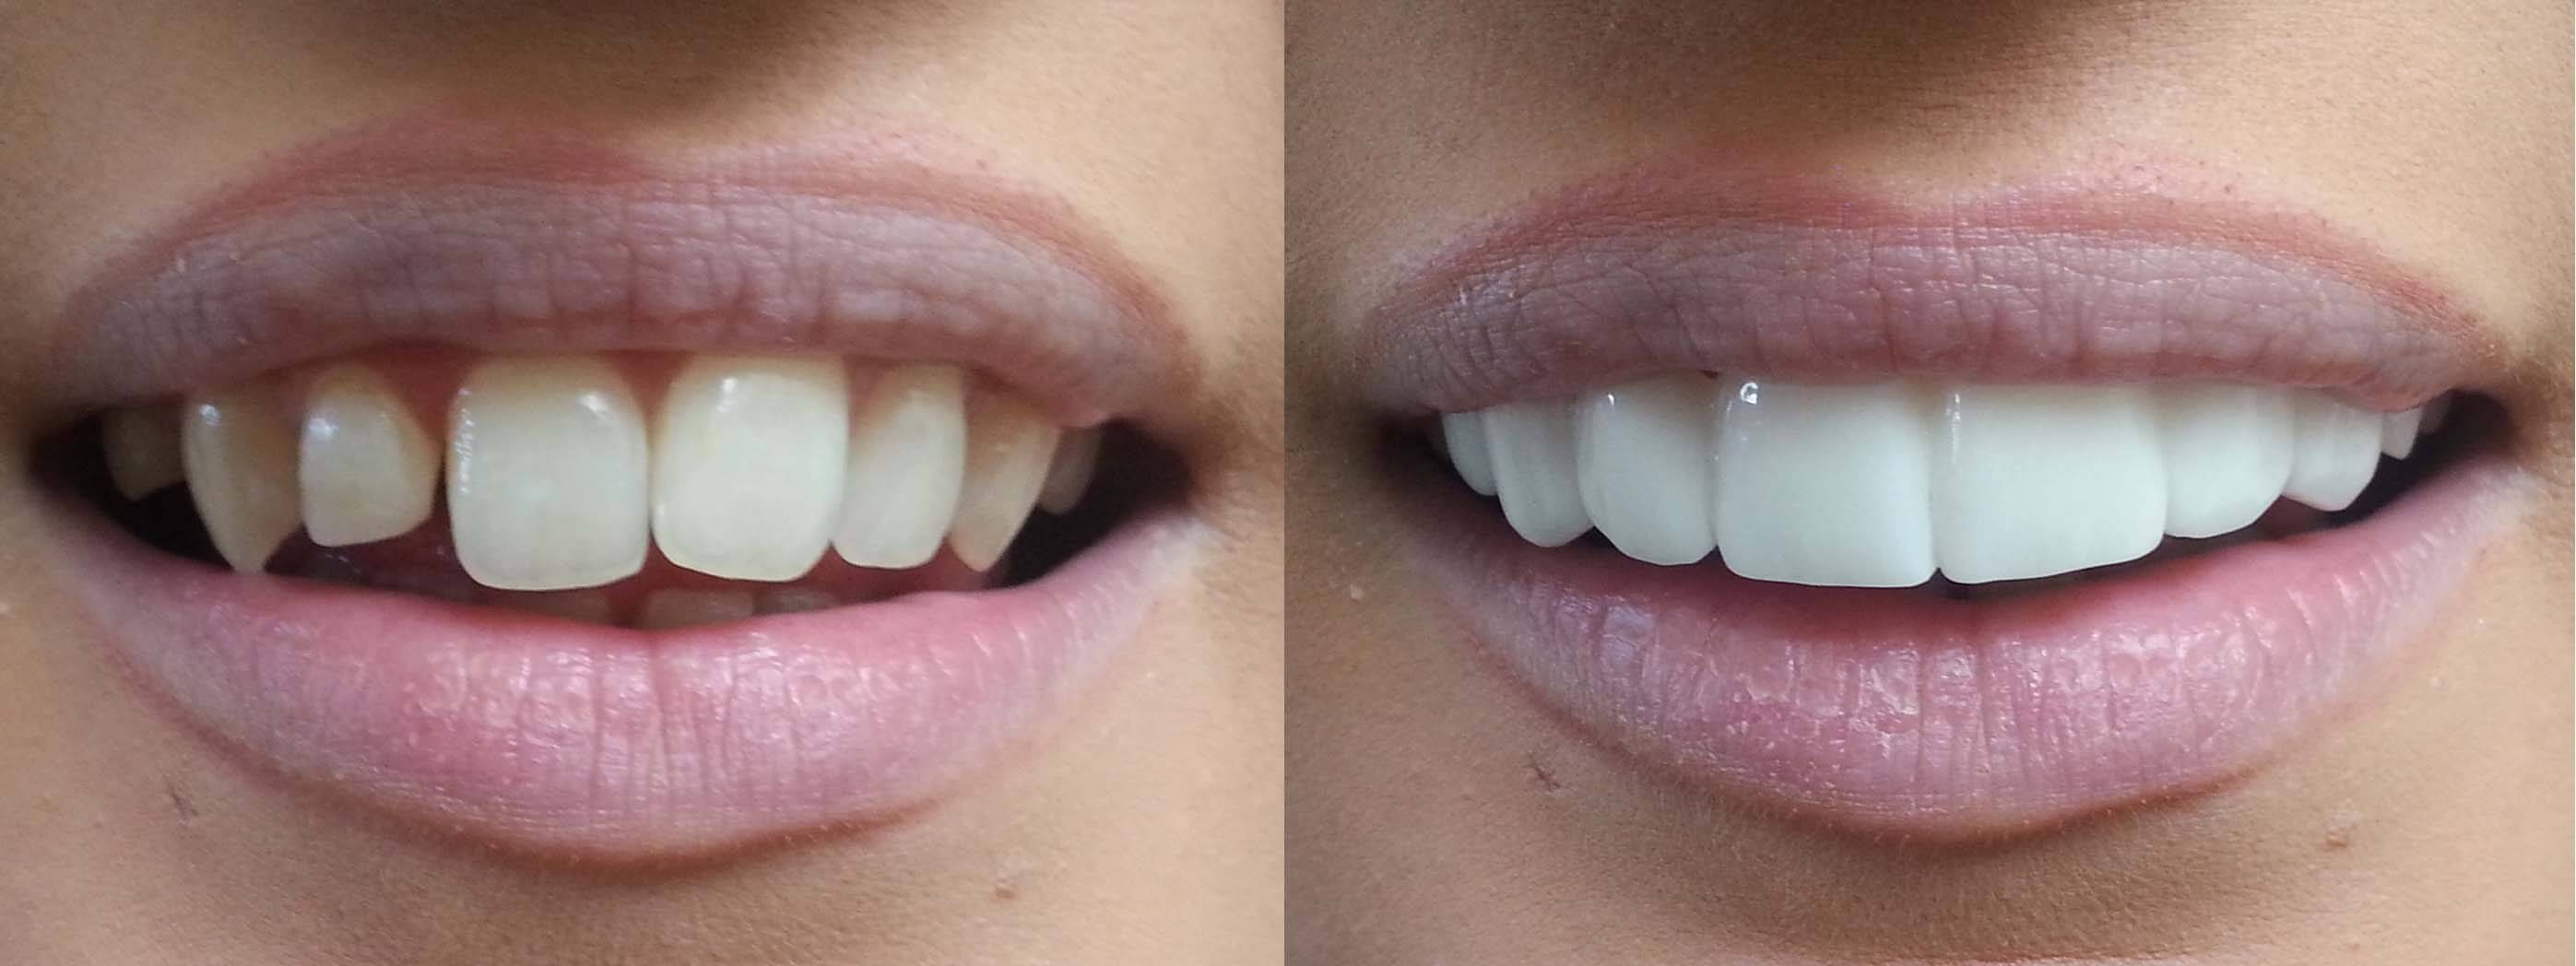 Do it yourself veneers the dental guide clip on veneers bleach shade before afters solutioingenieria Image collections